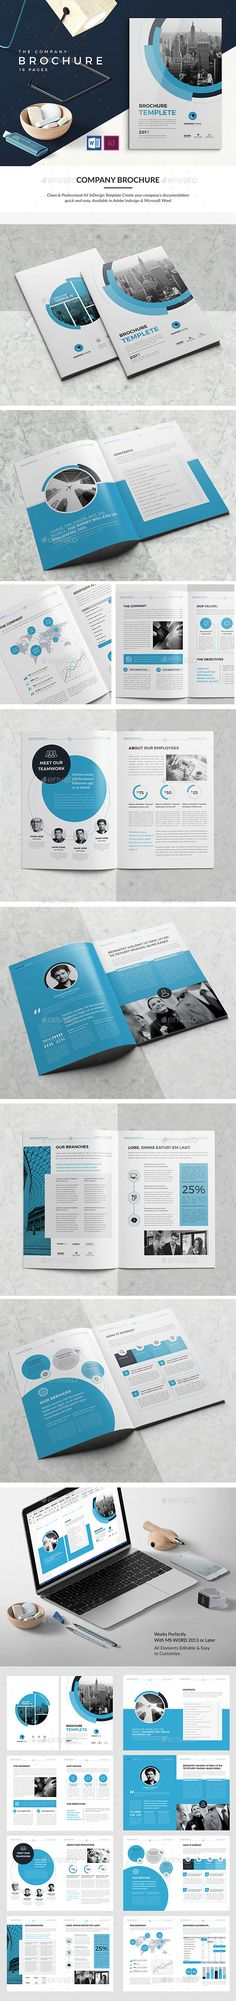 Business infographic & data visualisation Business infographic : CO Brochure 16 Pages InDesign INDD . Freelance Graphic Design, Graphic Design Projects, Graphic Design Services, Print Layout, Layout Design, Print Design, Corporate Design, Business Design, Corporate Business